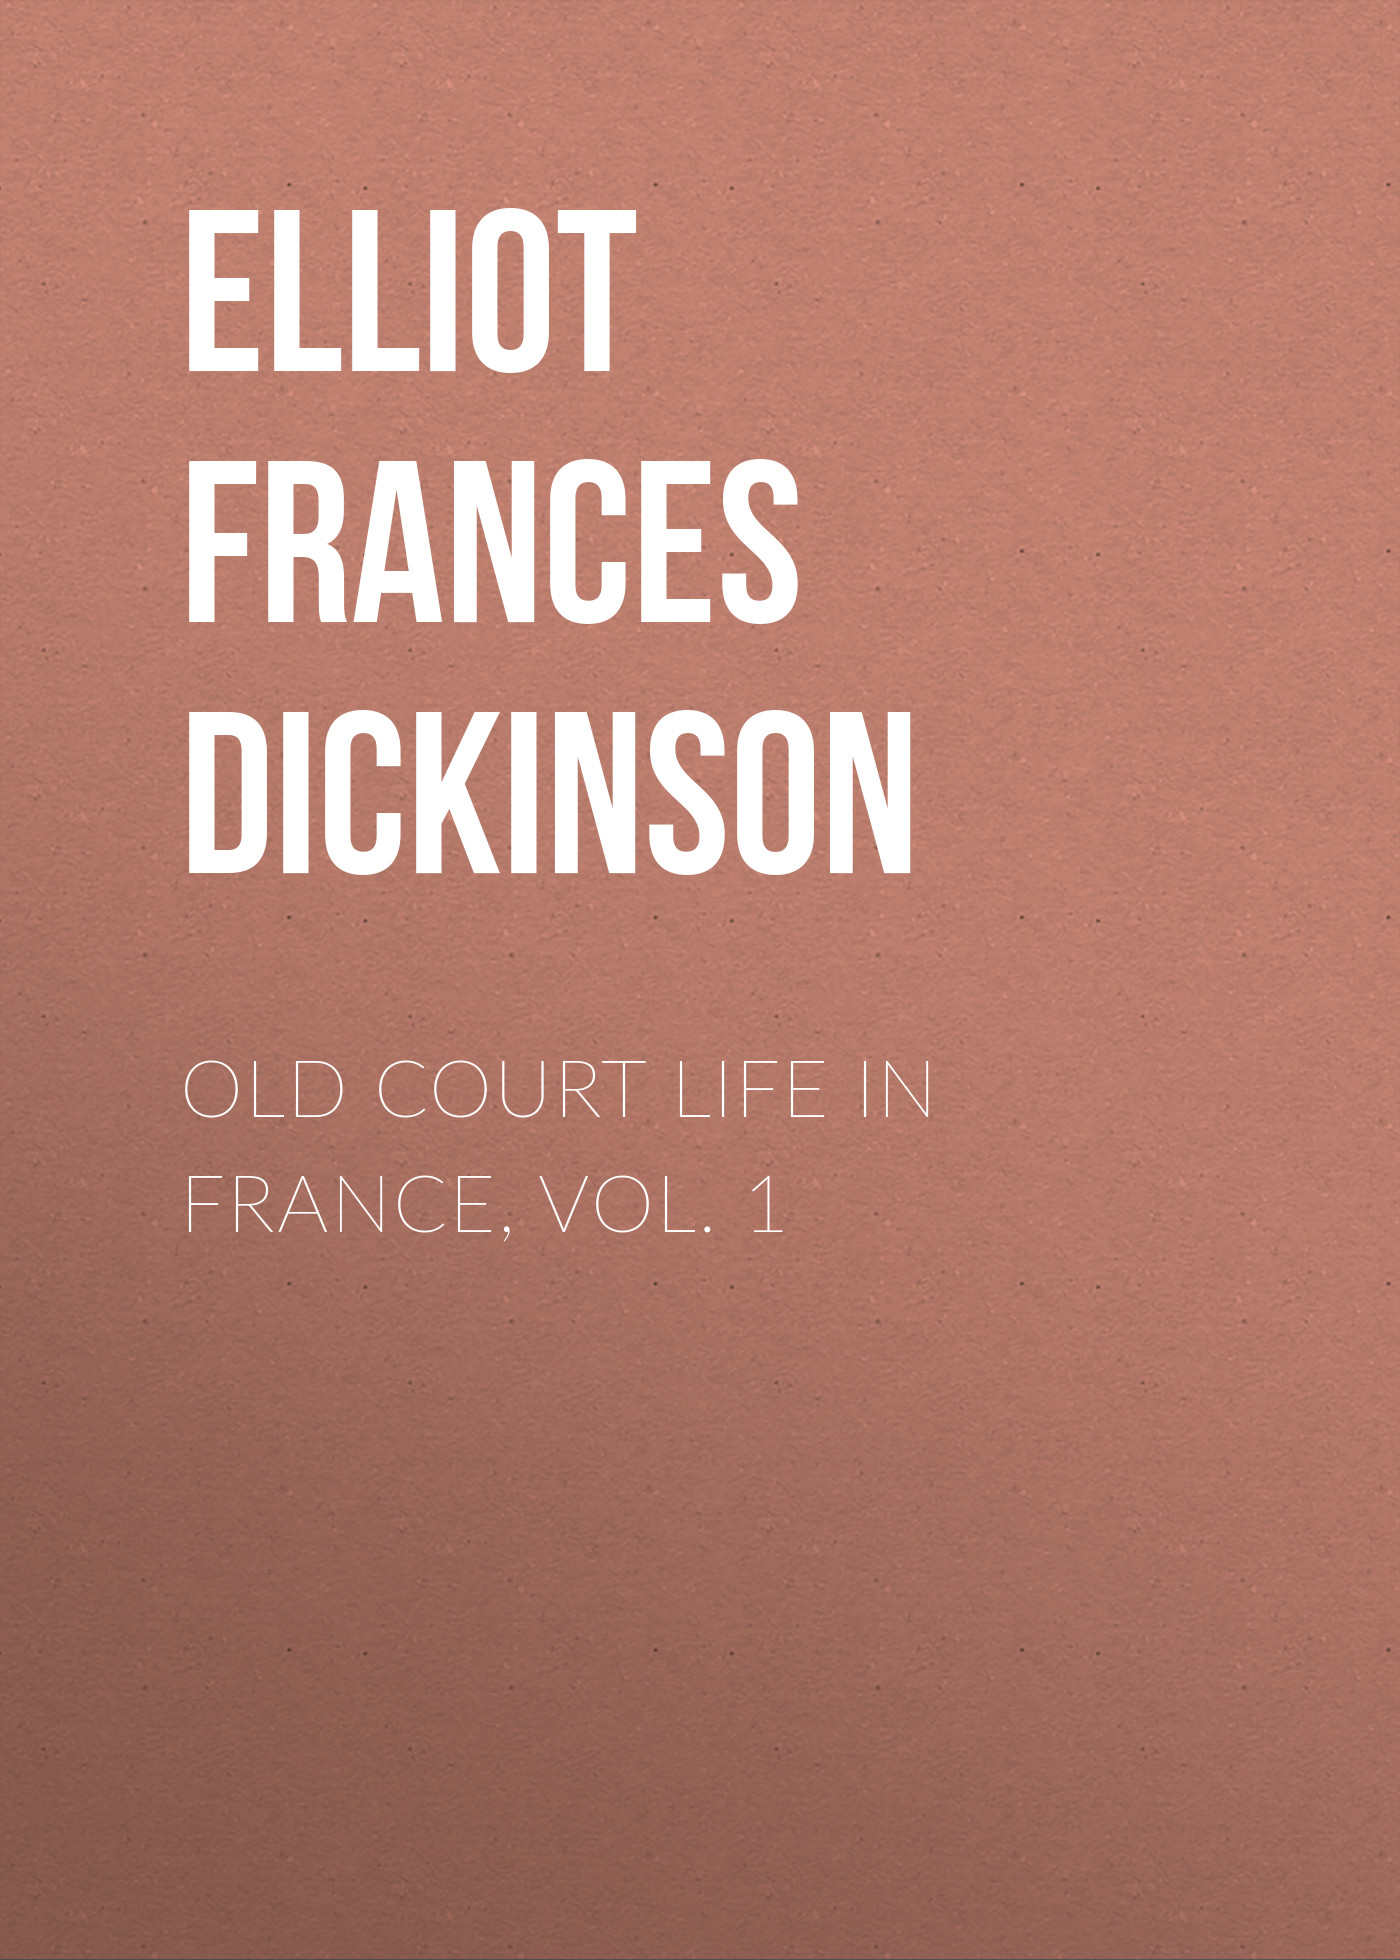 Elliot Frances Minto Dickinson Old Court Life in France, vol. 1 цена и фото